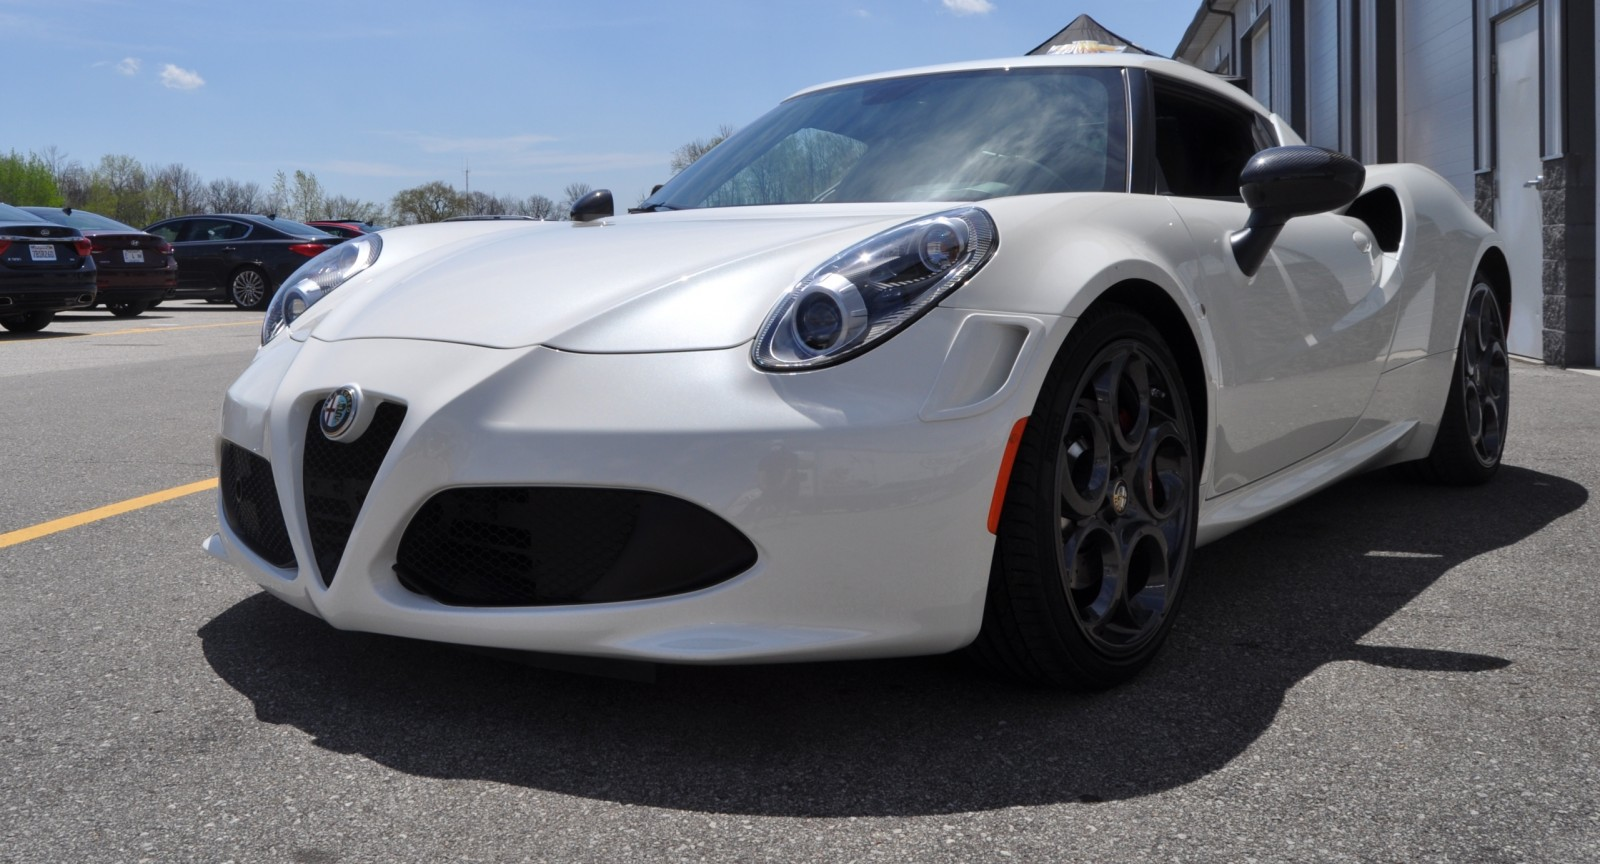 Gorgeous 2015 Alfa-Romeo 4C Revealed in Full USA Trim + New Headlights! 11